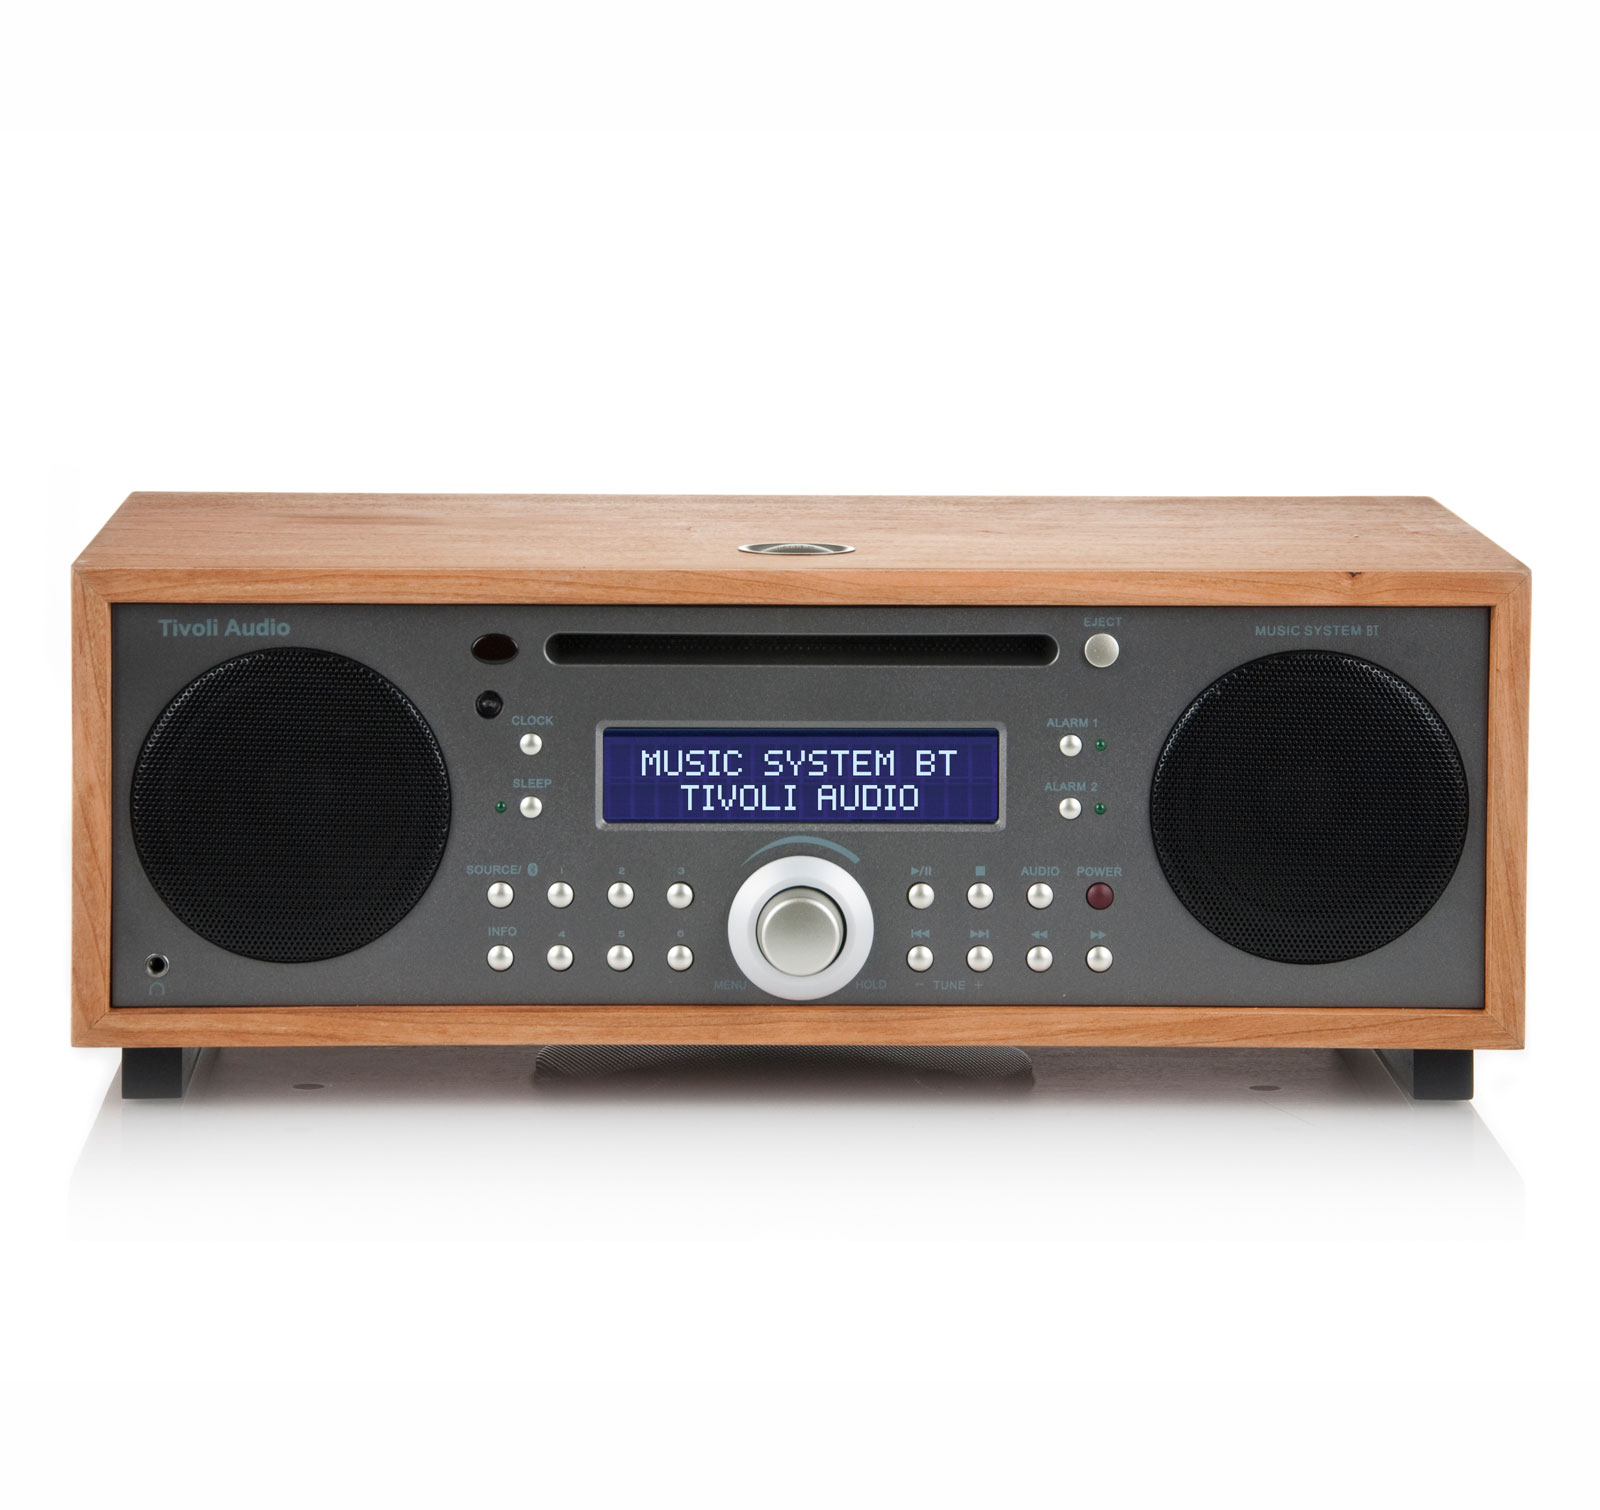 Tivoli Audio Music System BT Cherry Taupe All-In-One Wireless Bluetooth System by Tivoli